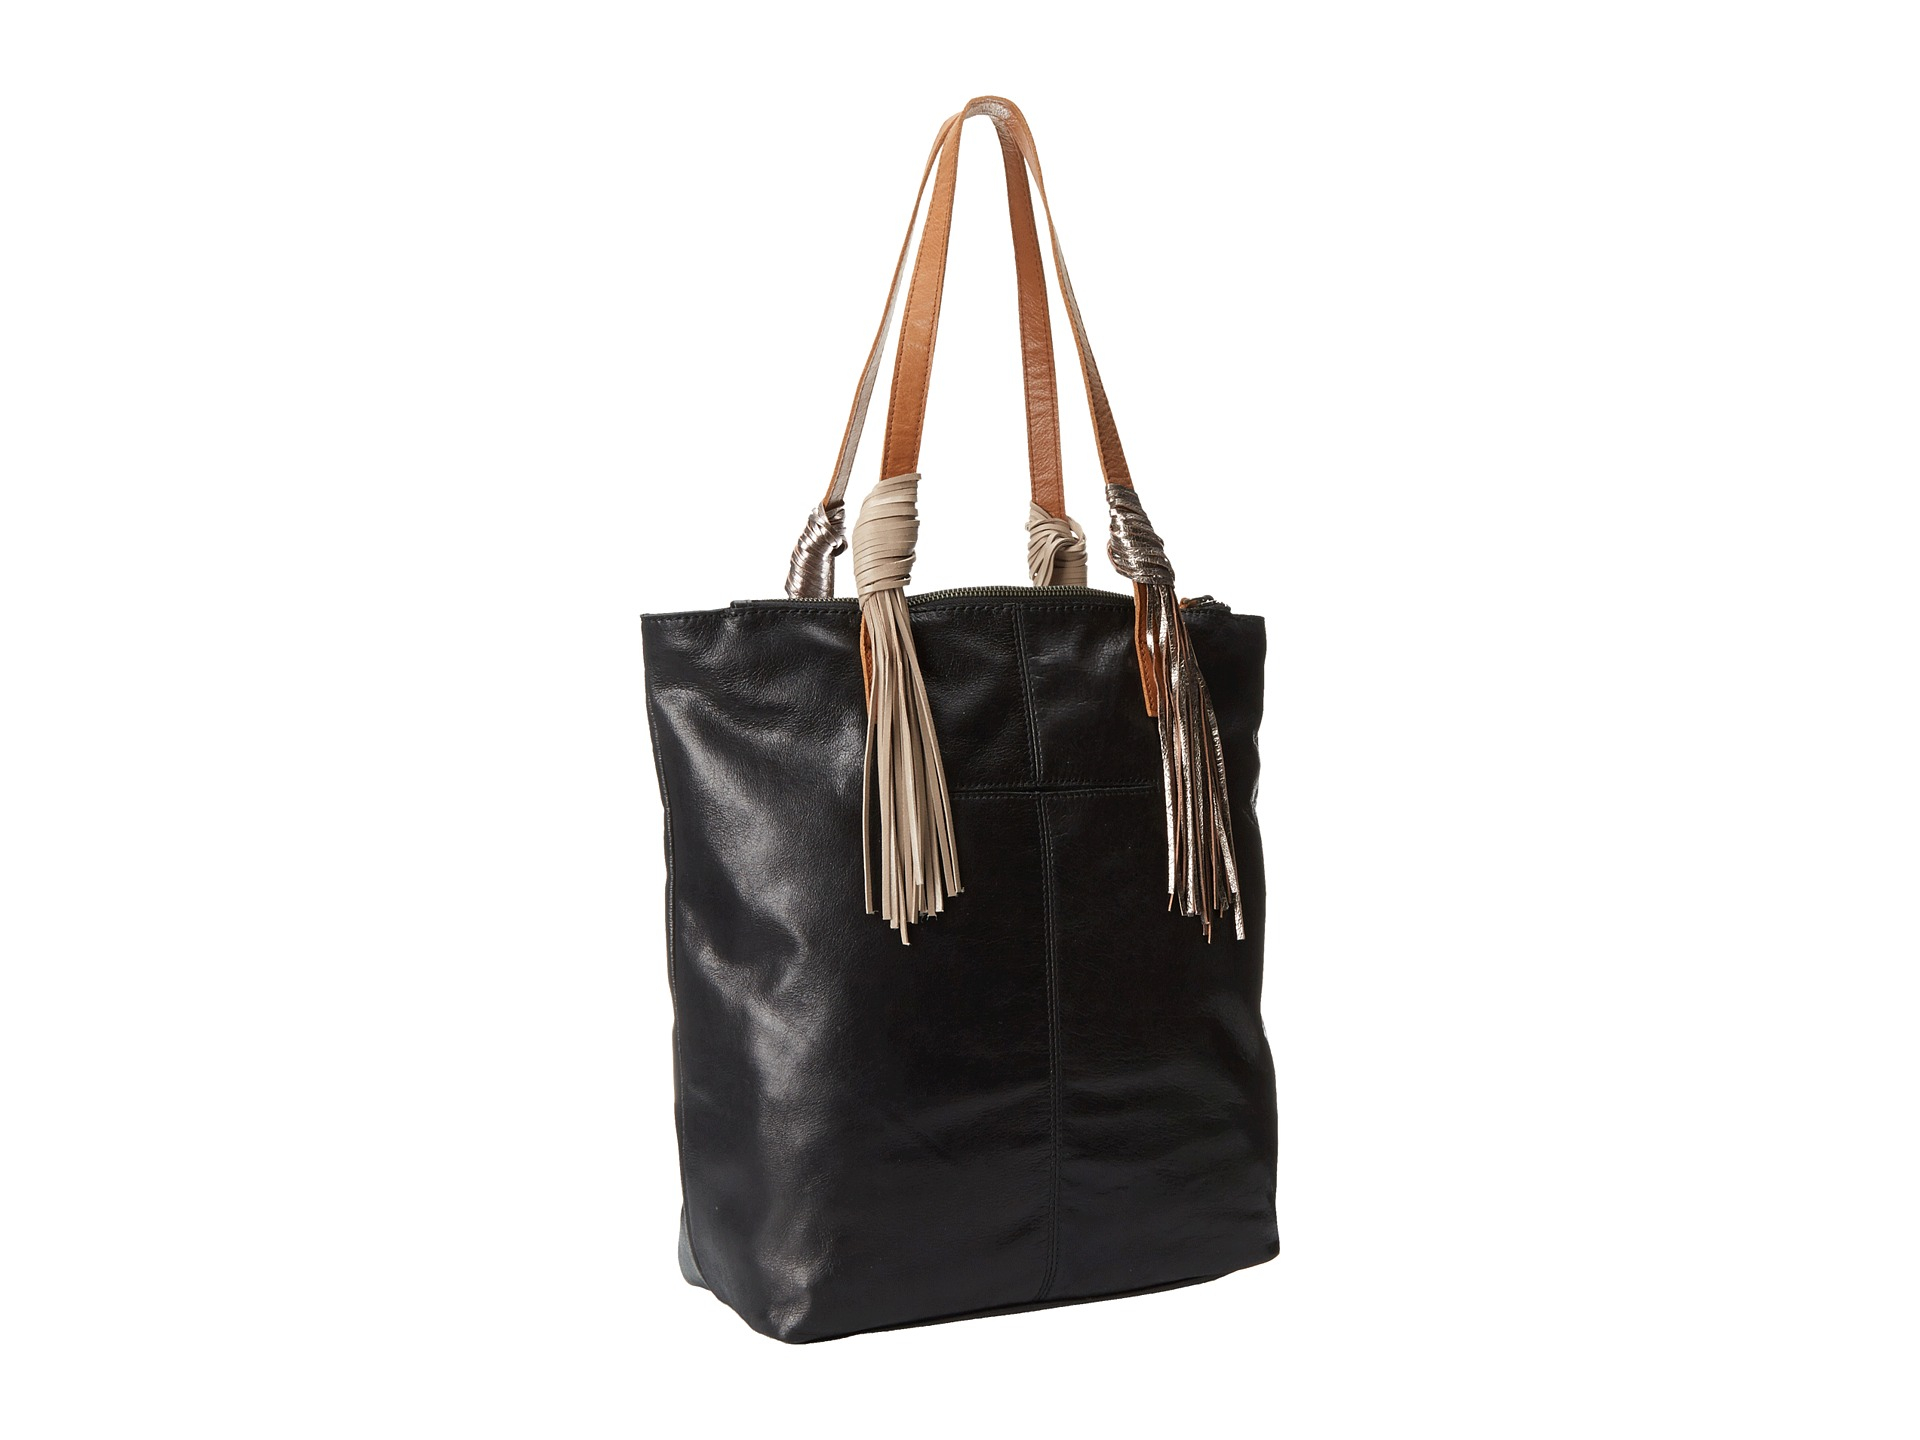 Lyst - The Sak Palisade Leather Tote in Black 2e71567927320